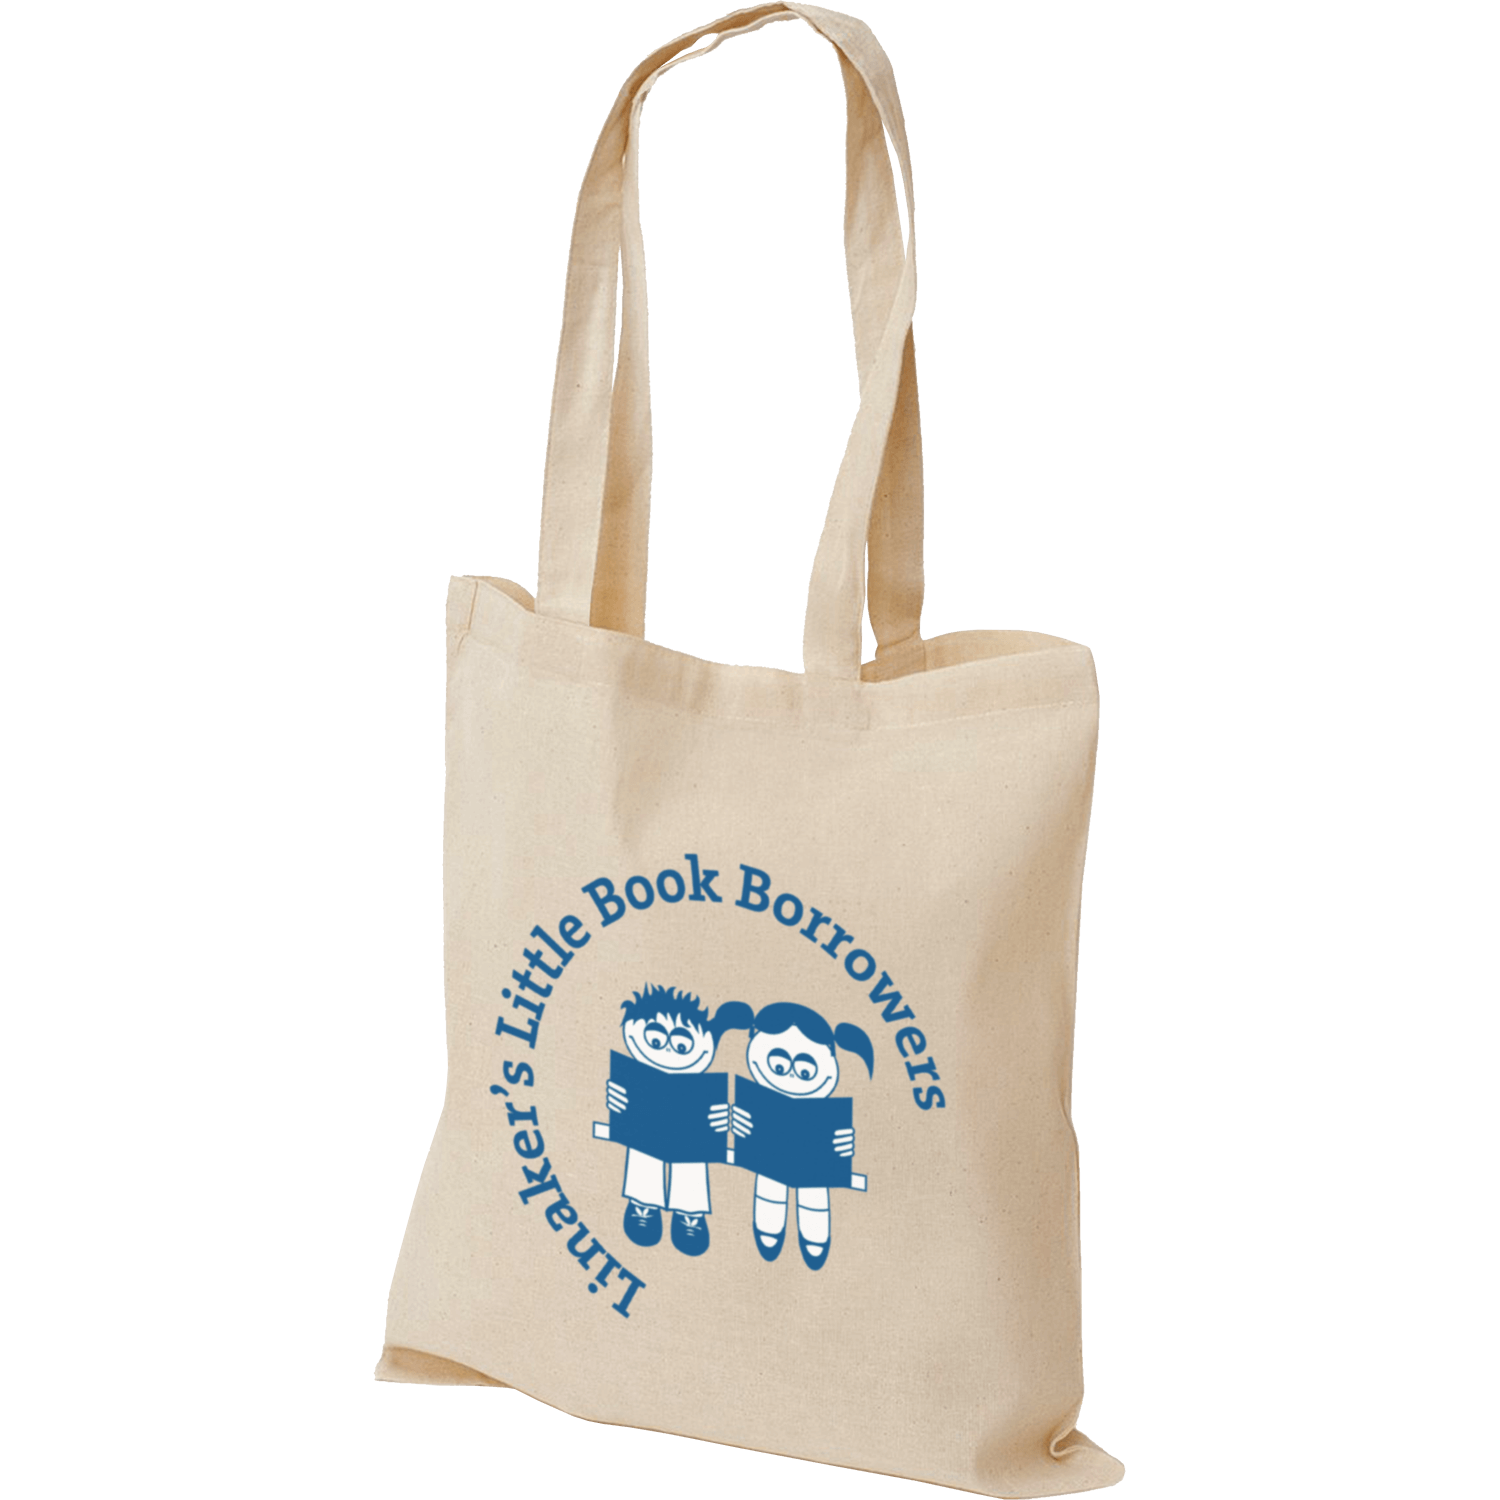 Cotton Printed Tote Bags 5oz Web Special